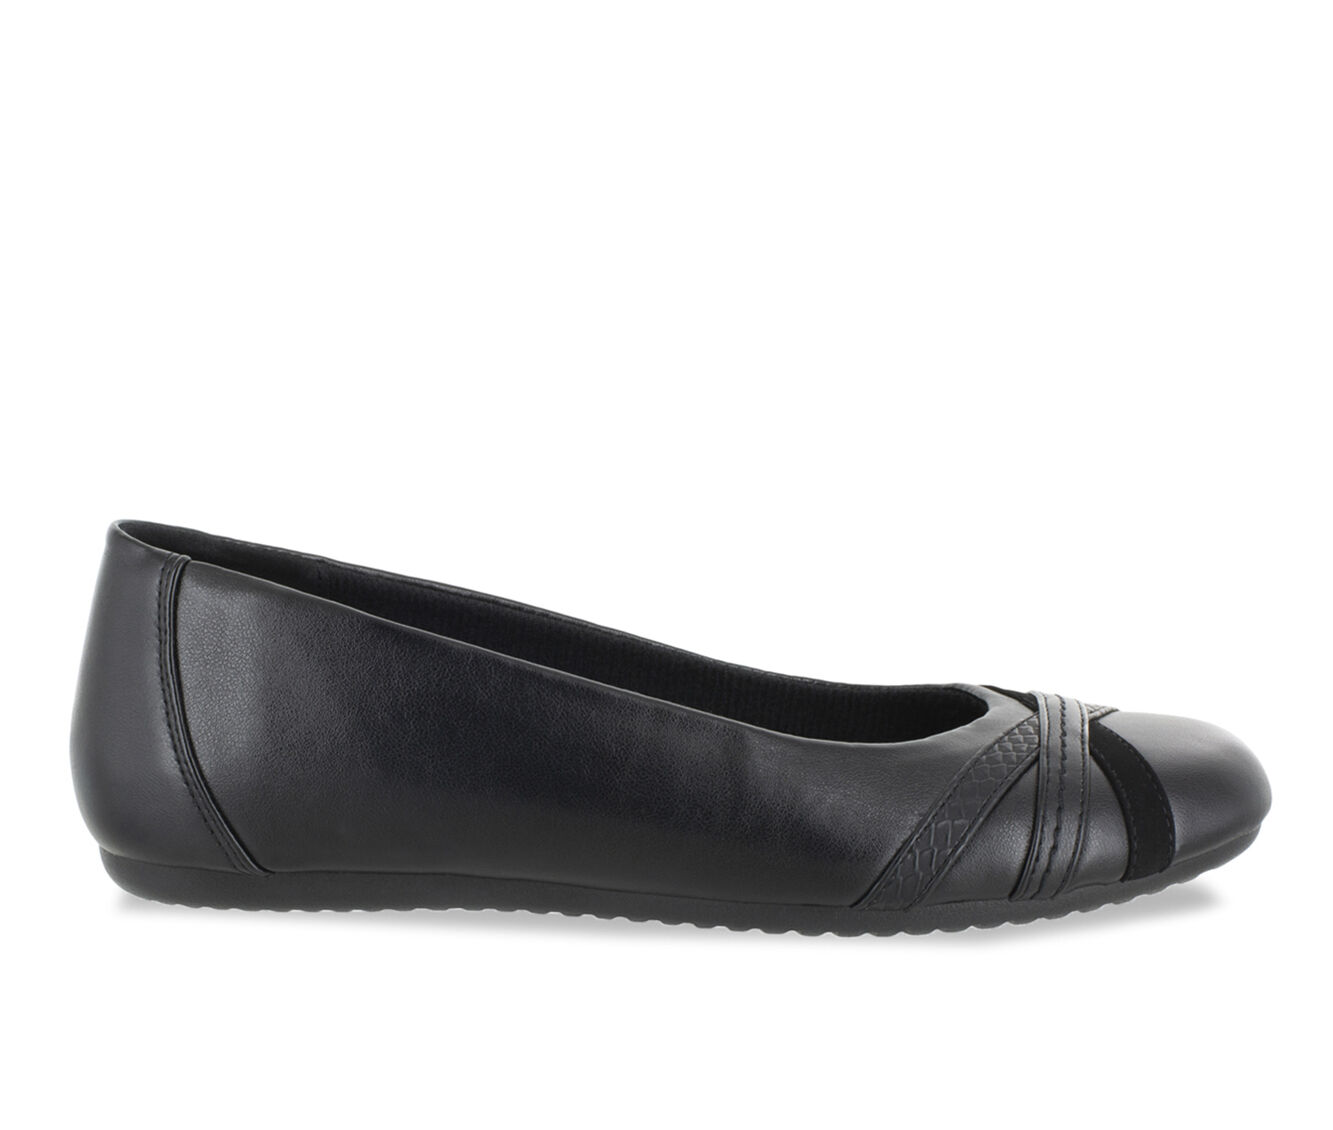 Women's Easy Street Derry Shoes Black